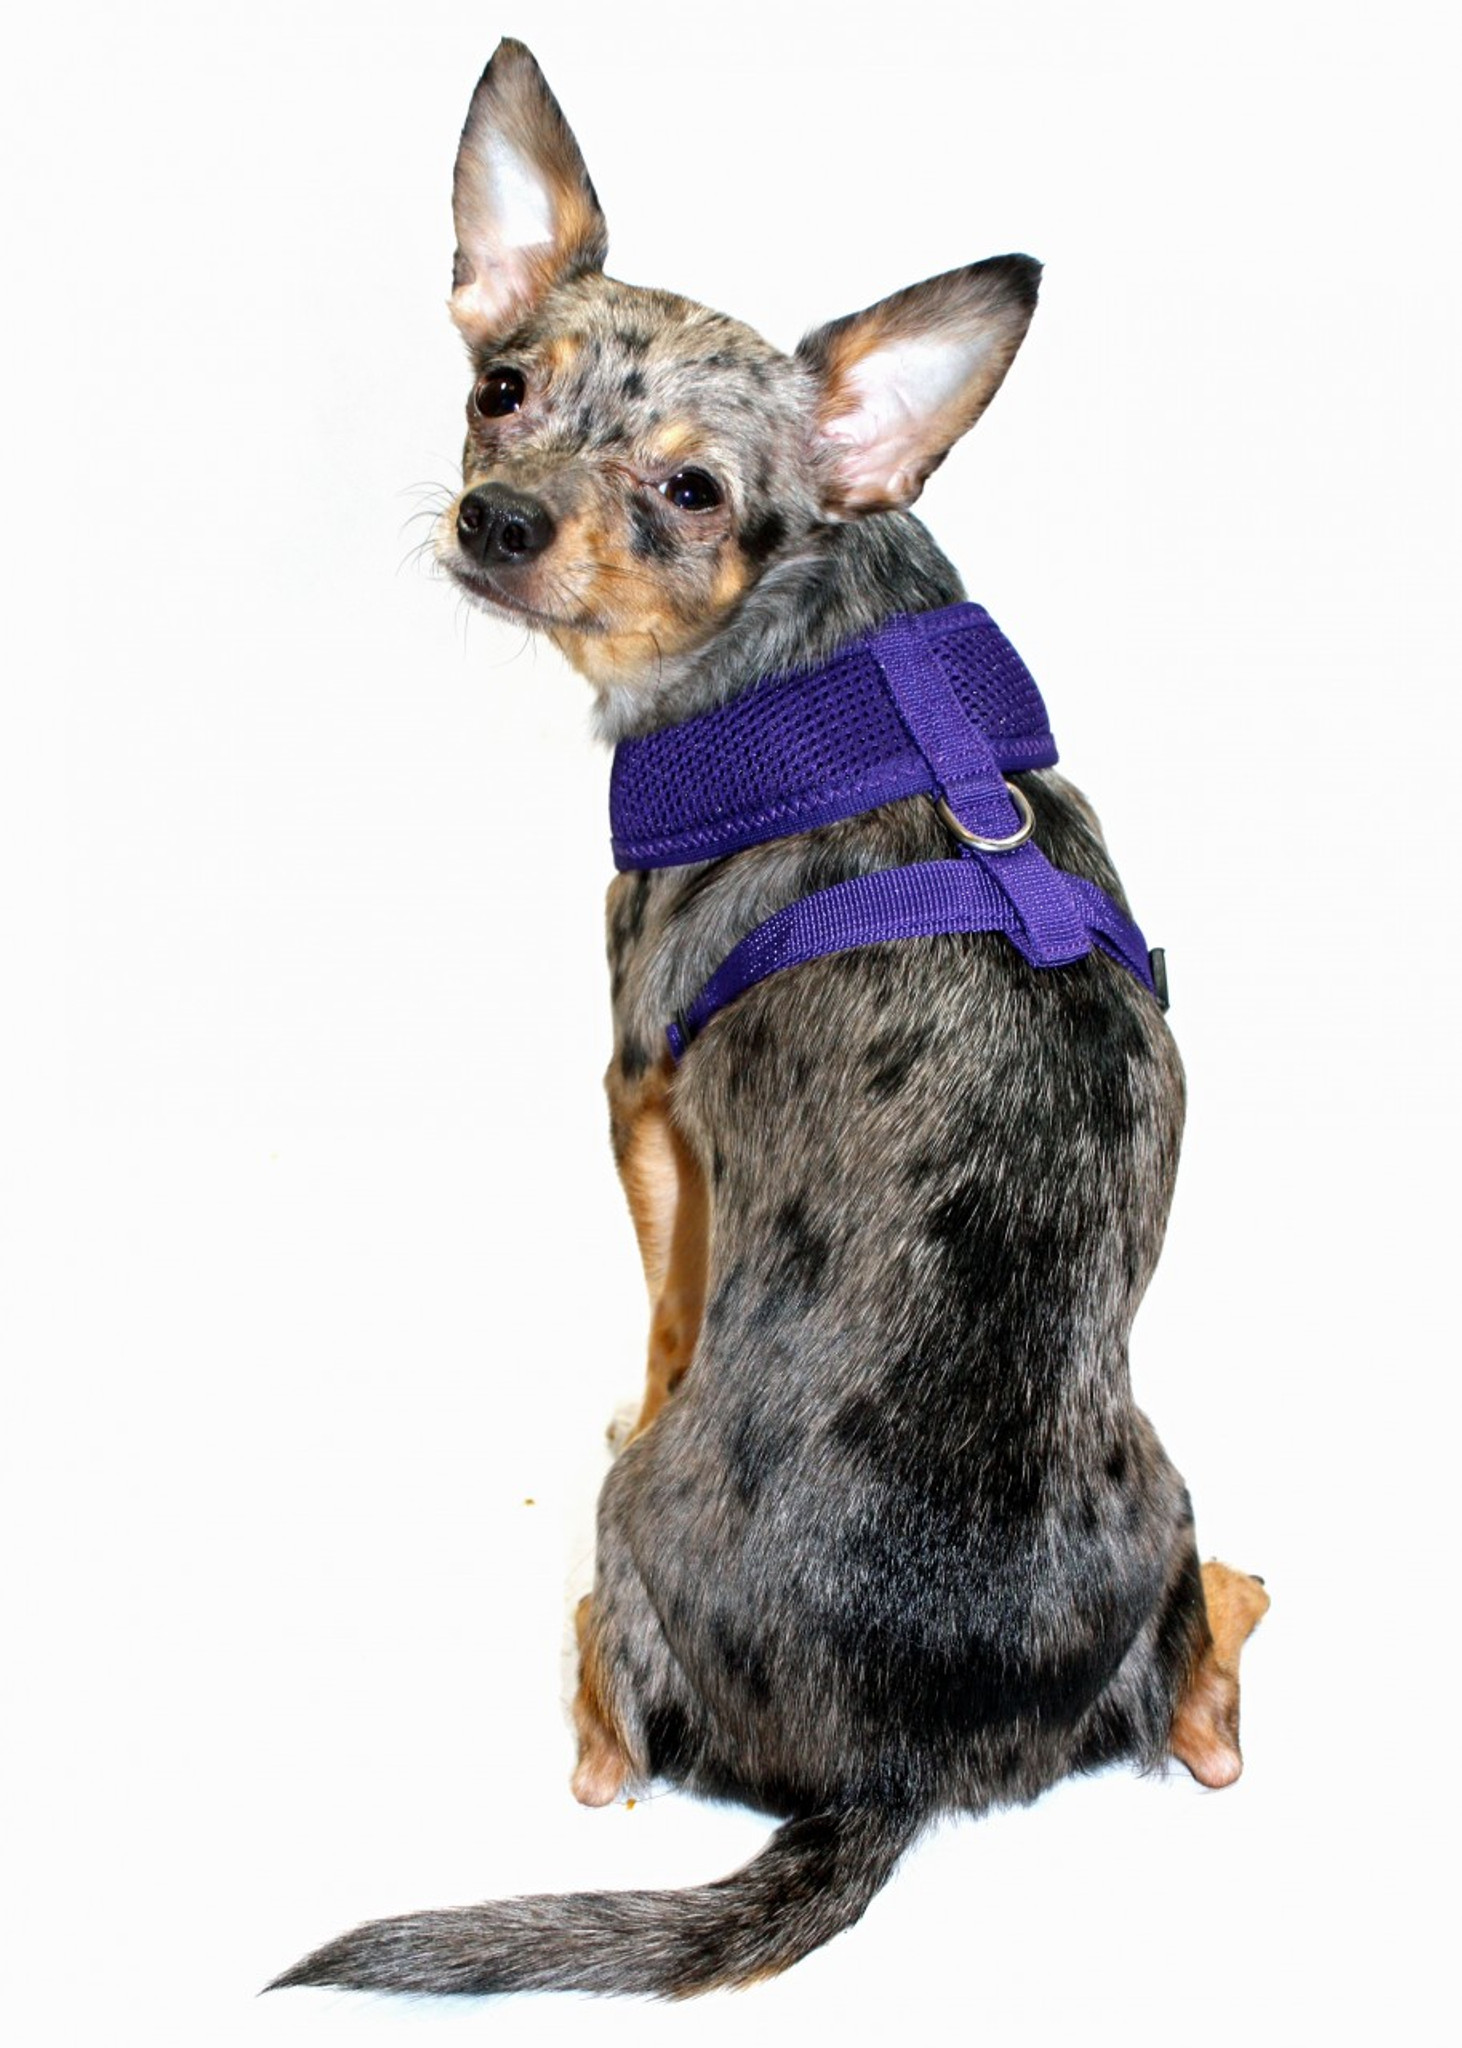 comfort dog hip model ultra harness purple free shipping comforter vest mesh zoom doggie hd